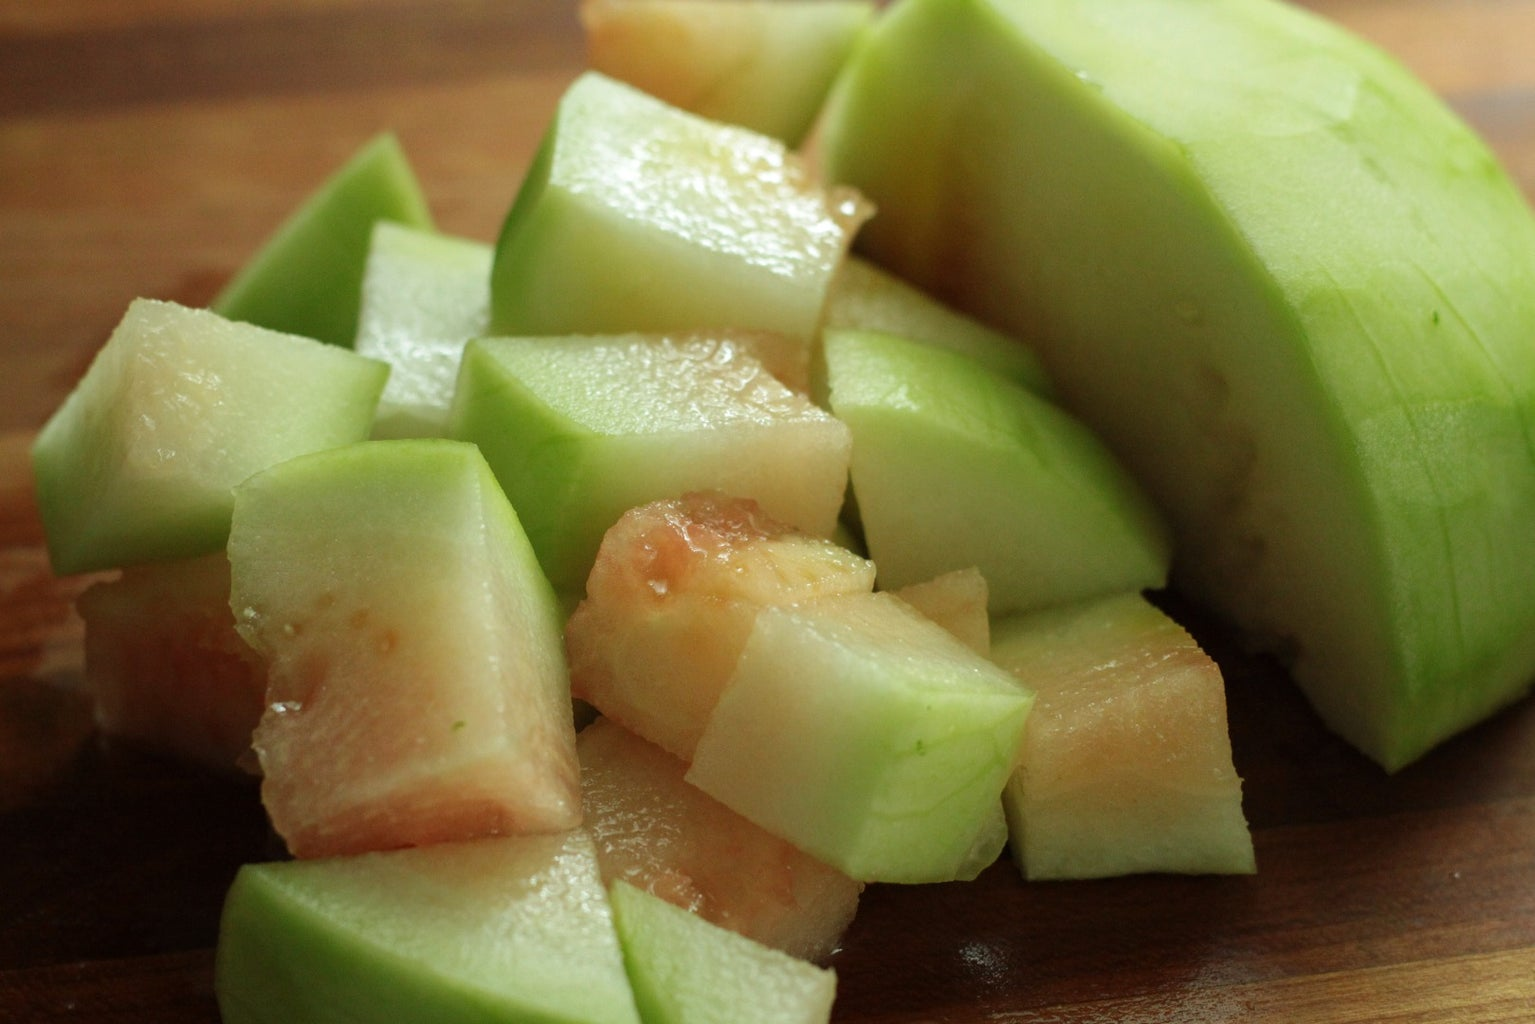 Peel Outer Portion of the Watermelon, Leaving the Green Rind. Then, Chop Into Cubes